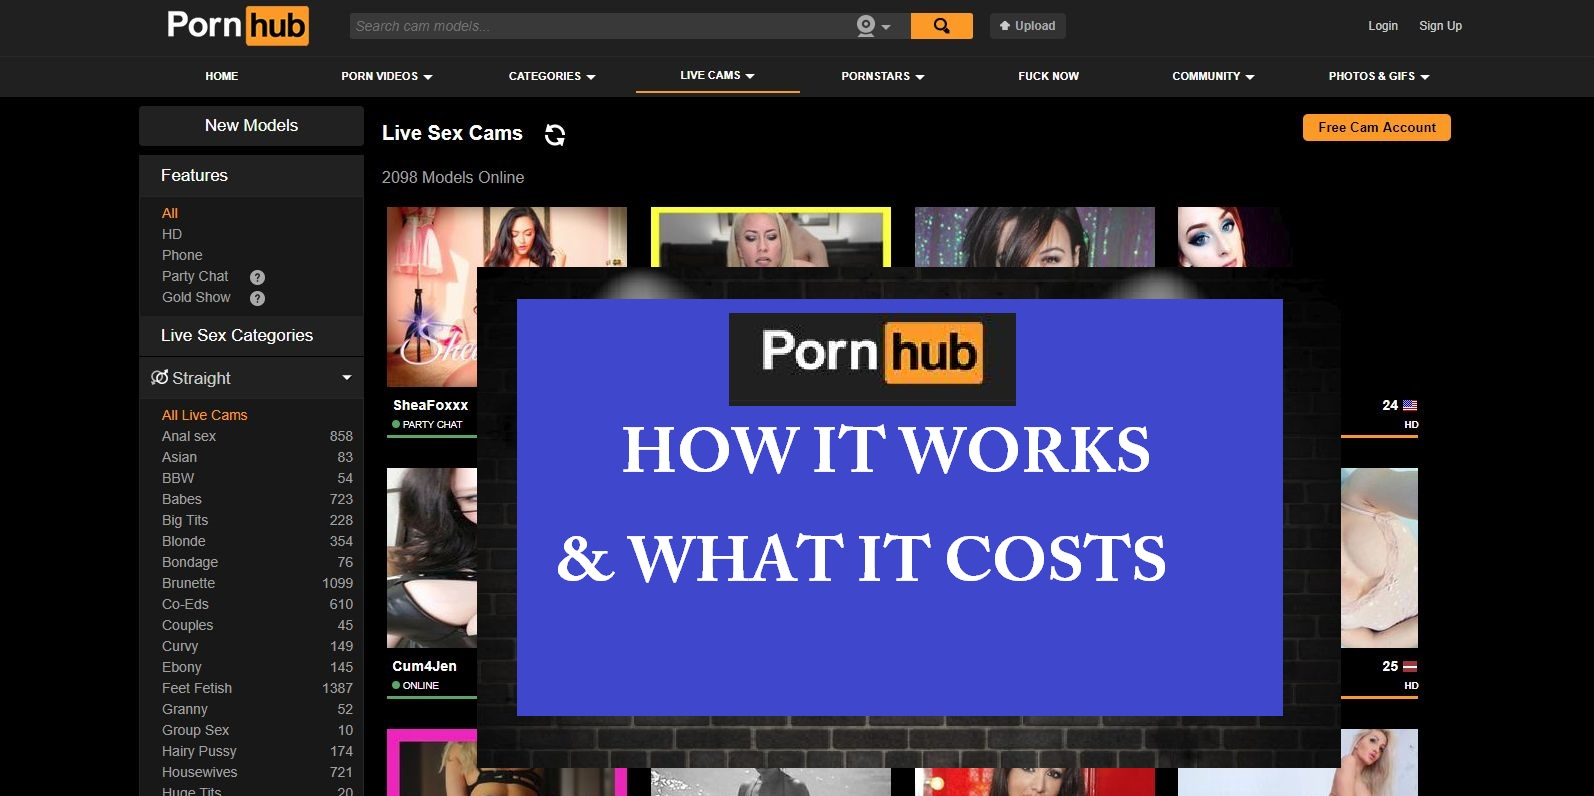 How much pornhublive.com costs